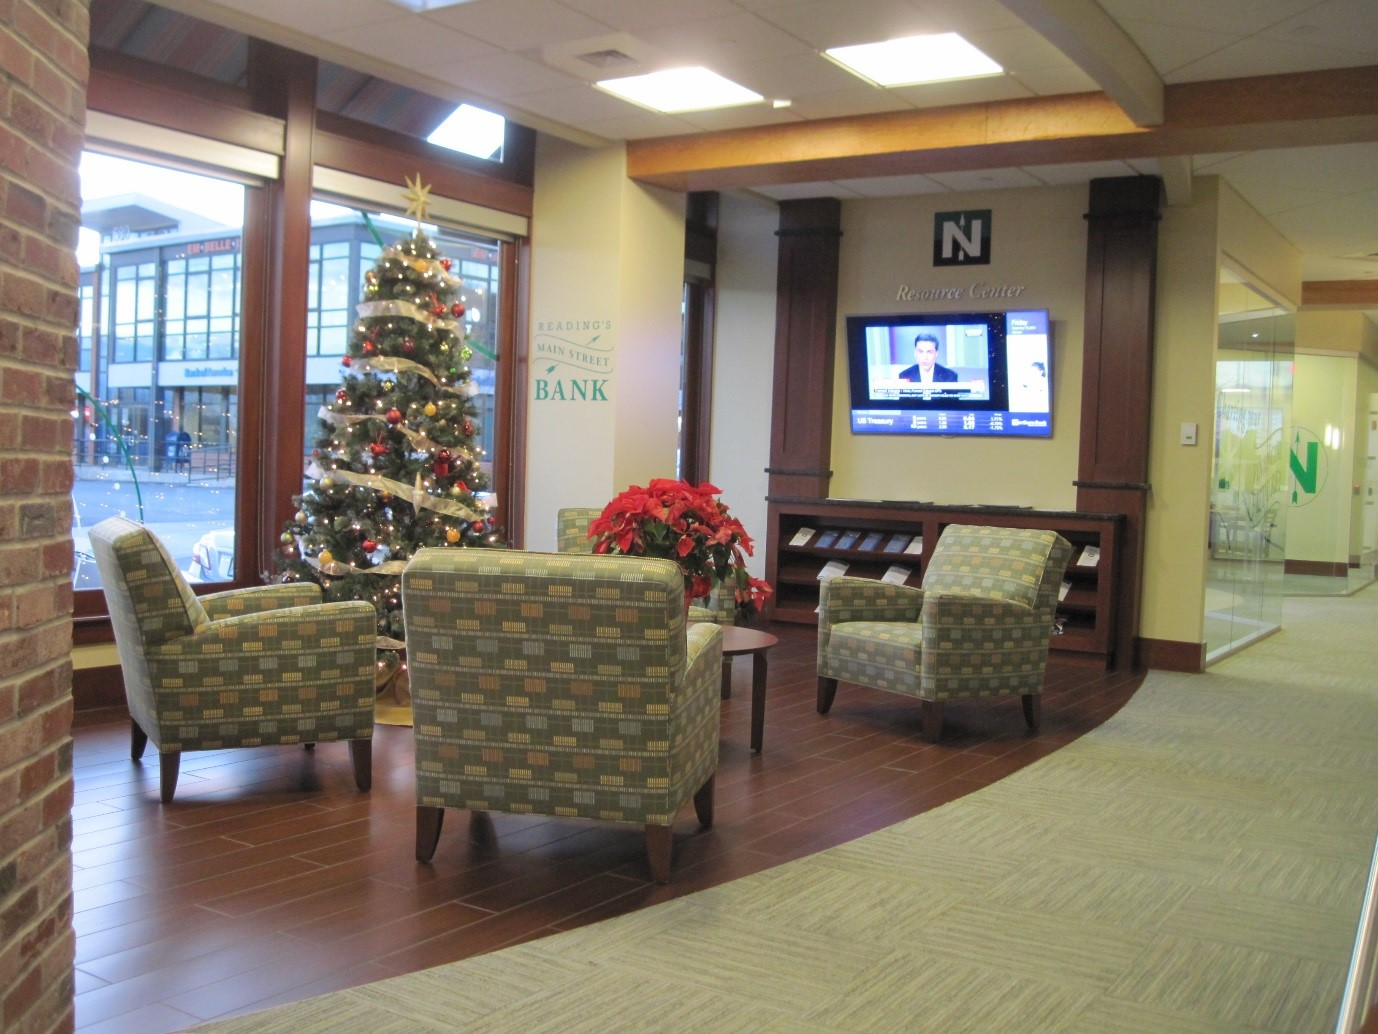 Customer Waiting, Coffee, and Media Center